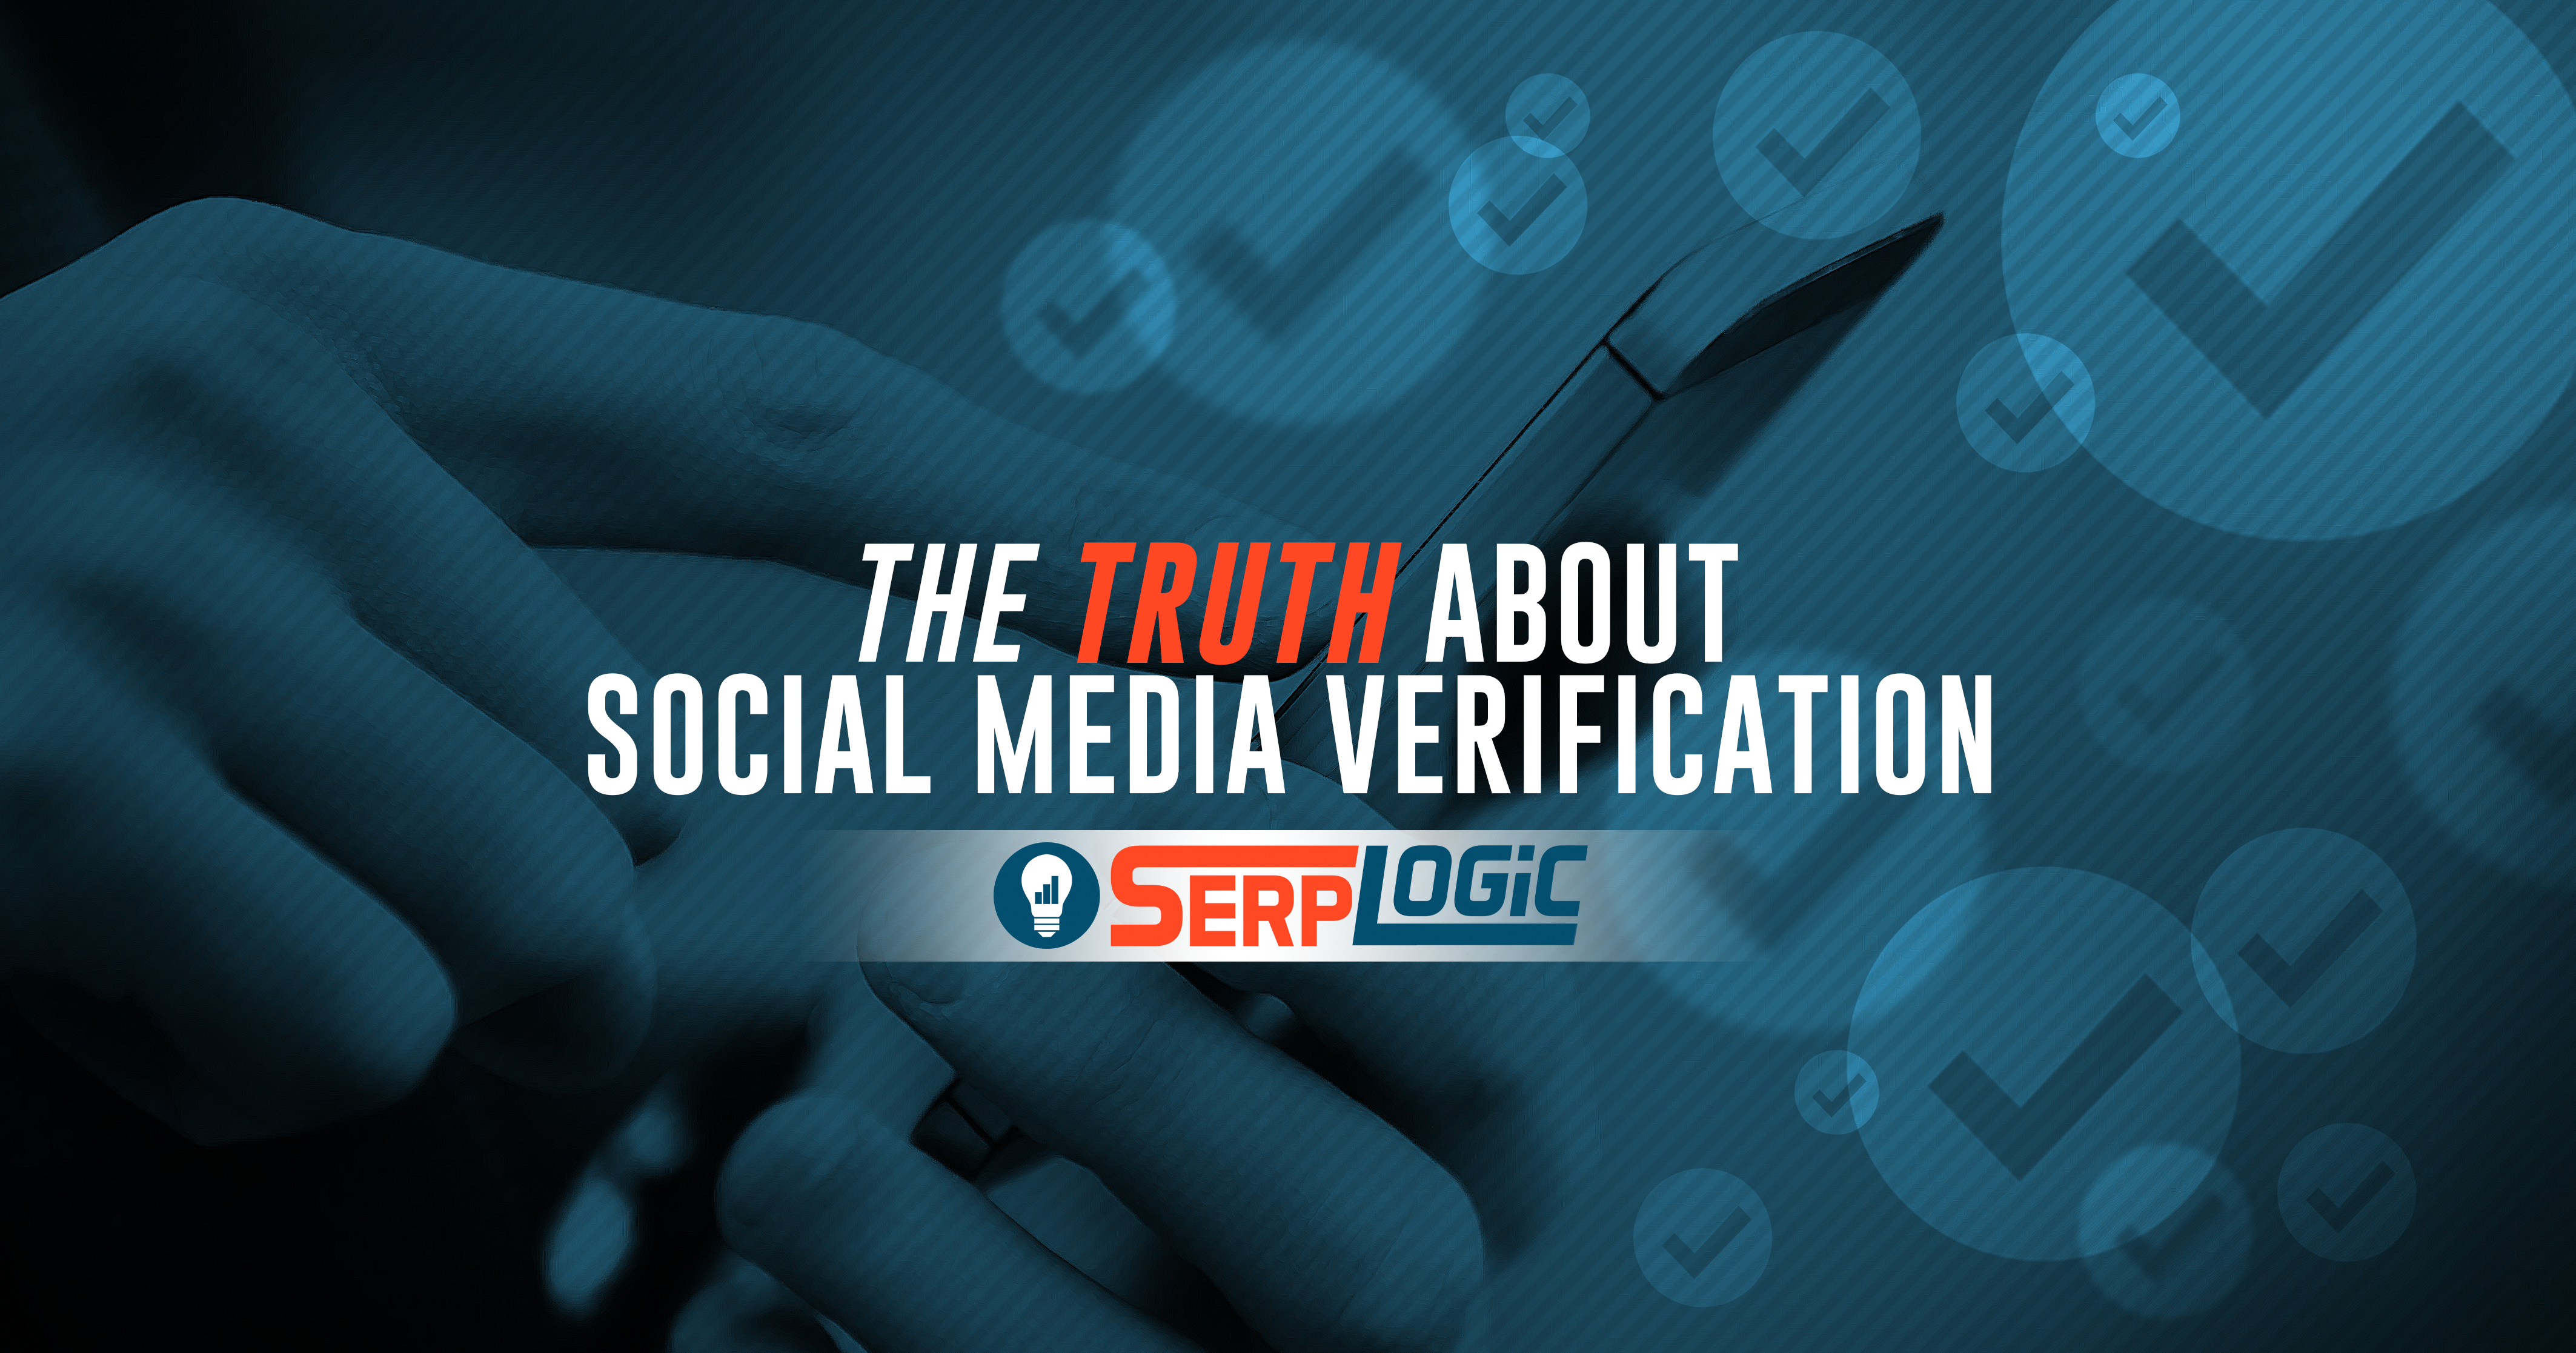 The truth about social media verification buycottarizona Image collections